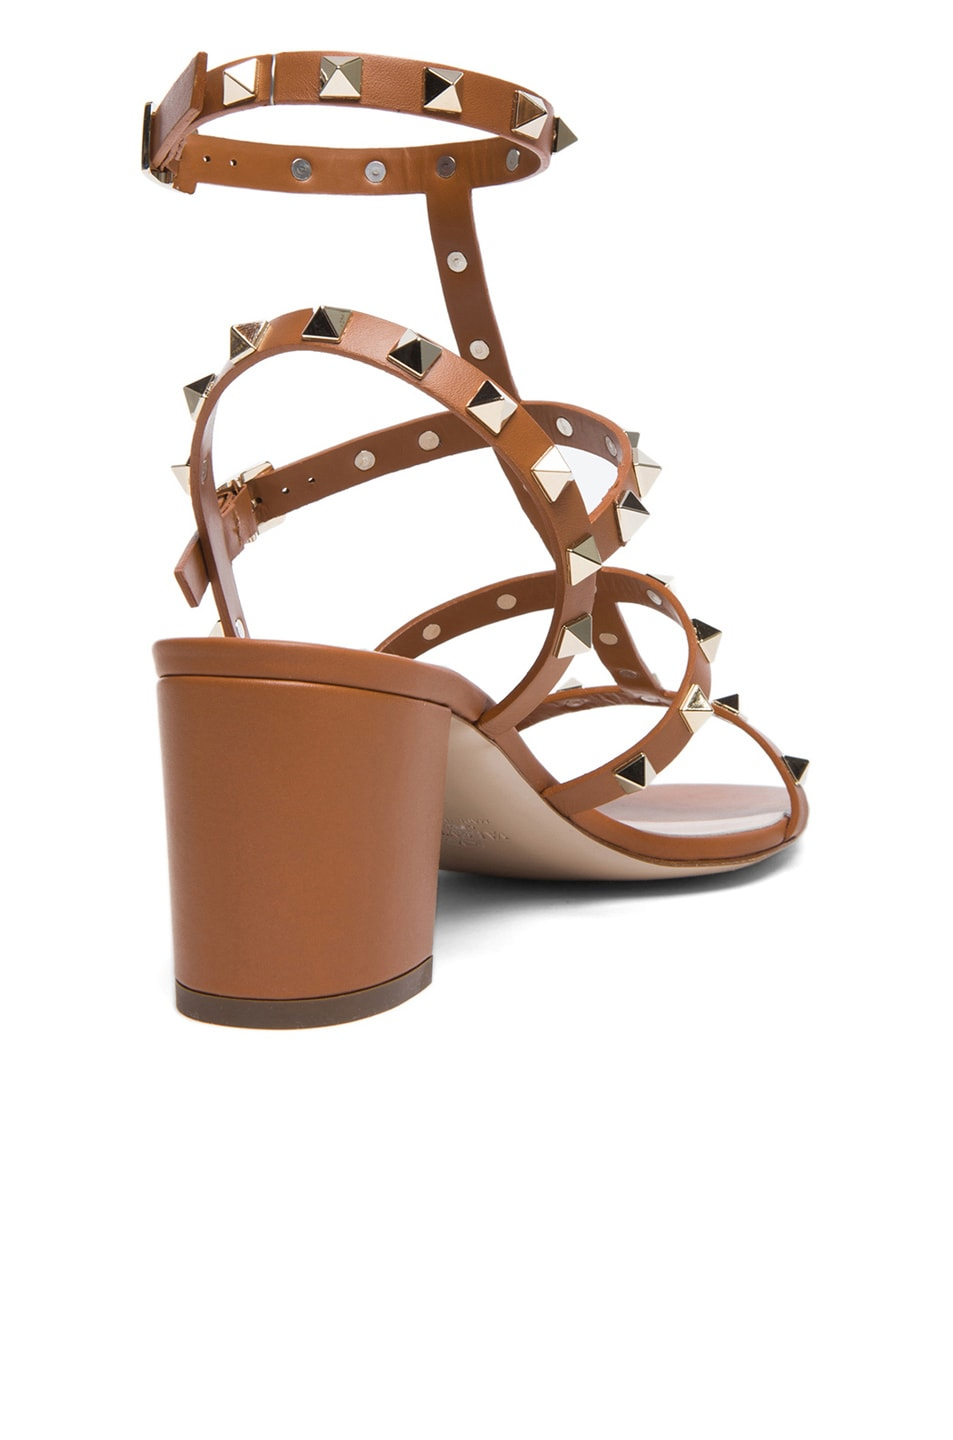 aec872886492 Image 3 of Valentino Rockstud Leather Sandals T.60 in Light Cuir